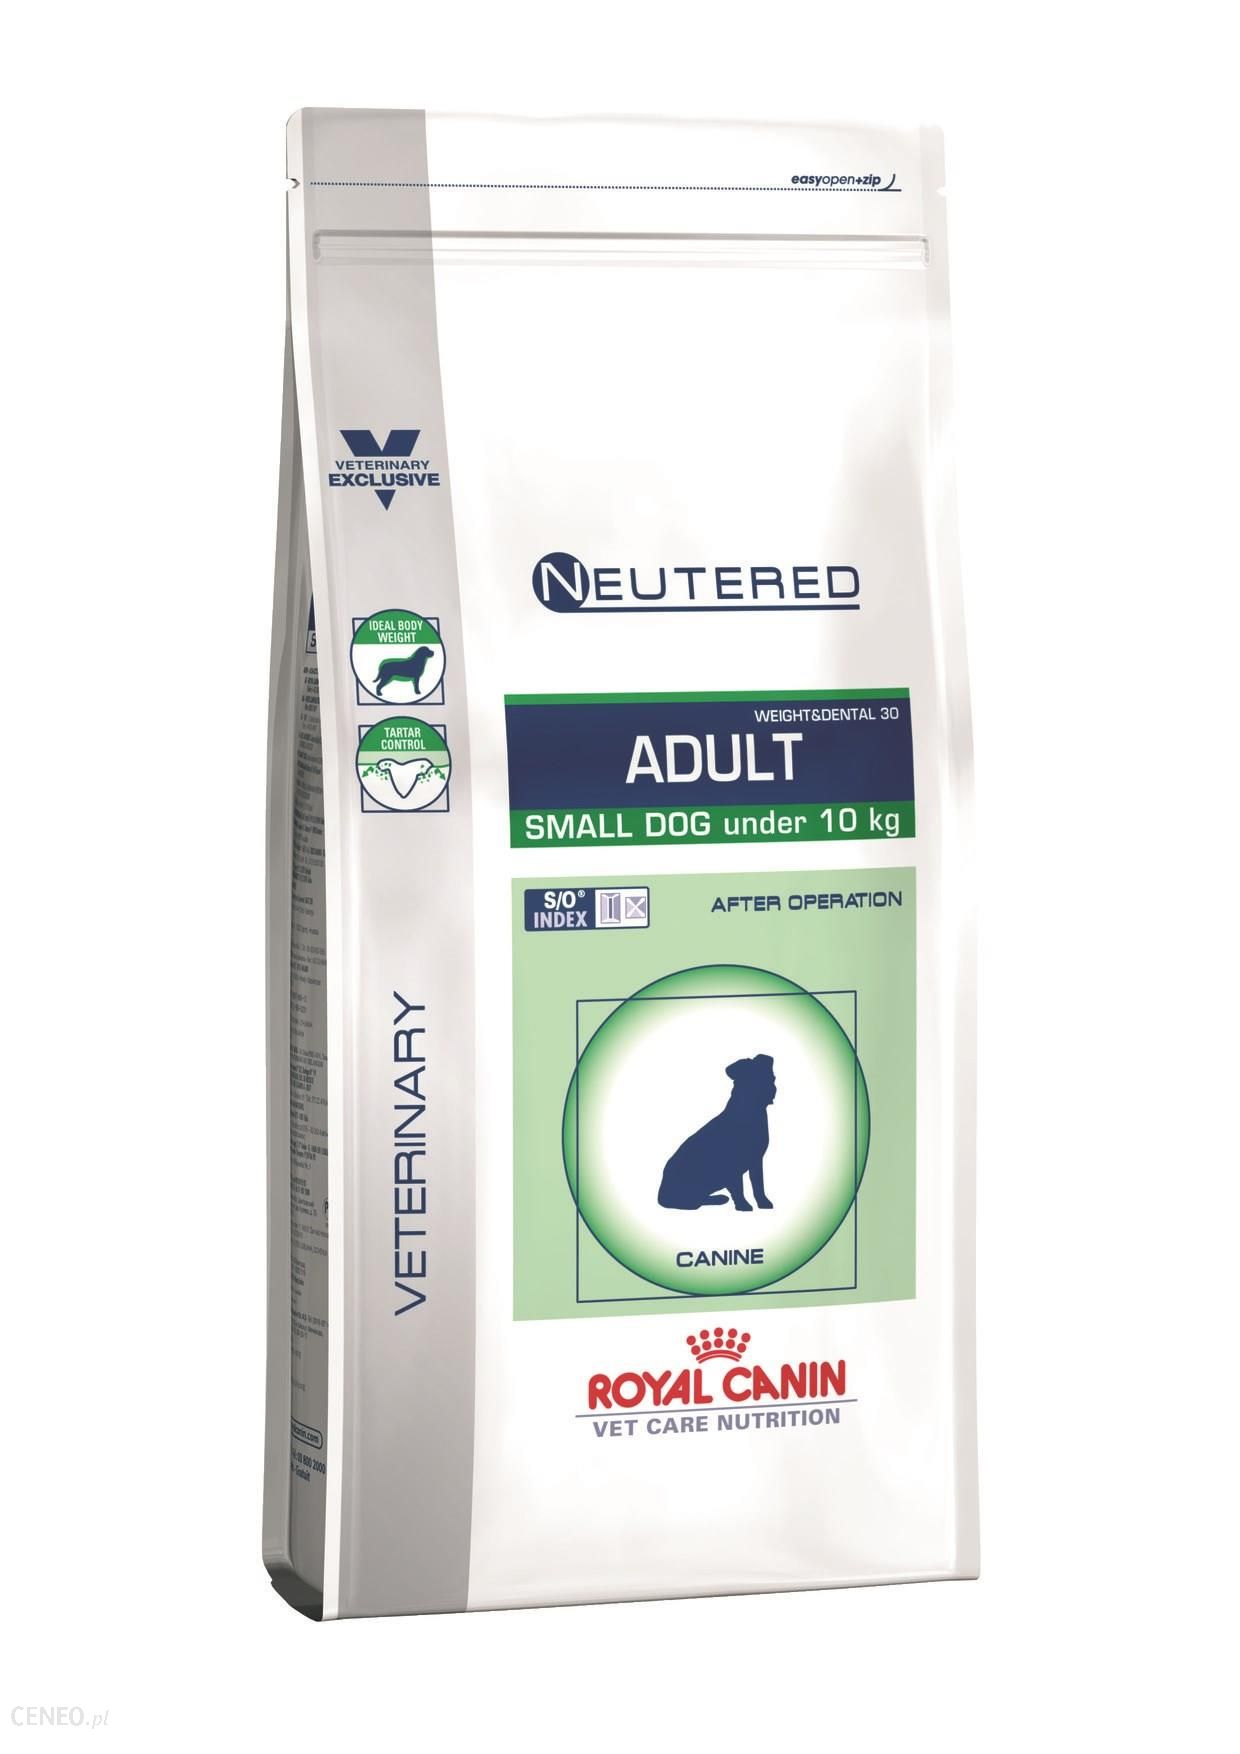 Royal Canin Veterinary Care Nutrition Neutered Adult Small Weight&Dental 30 3